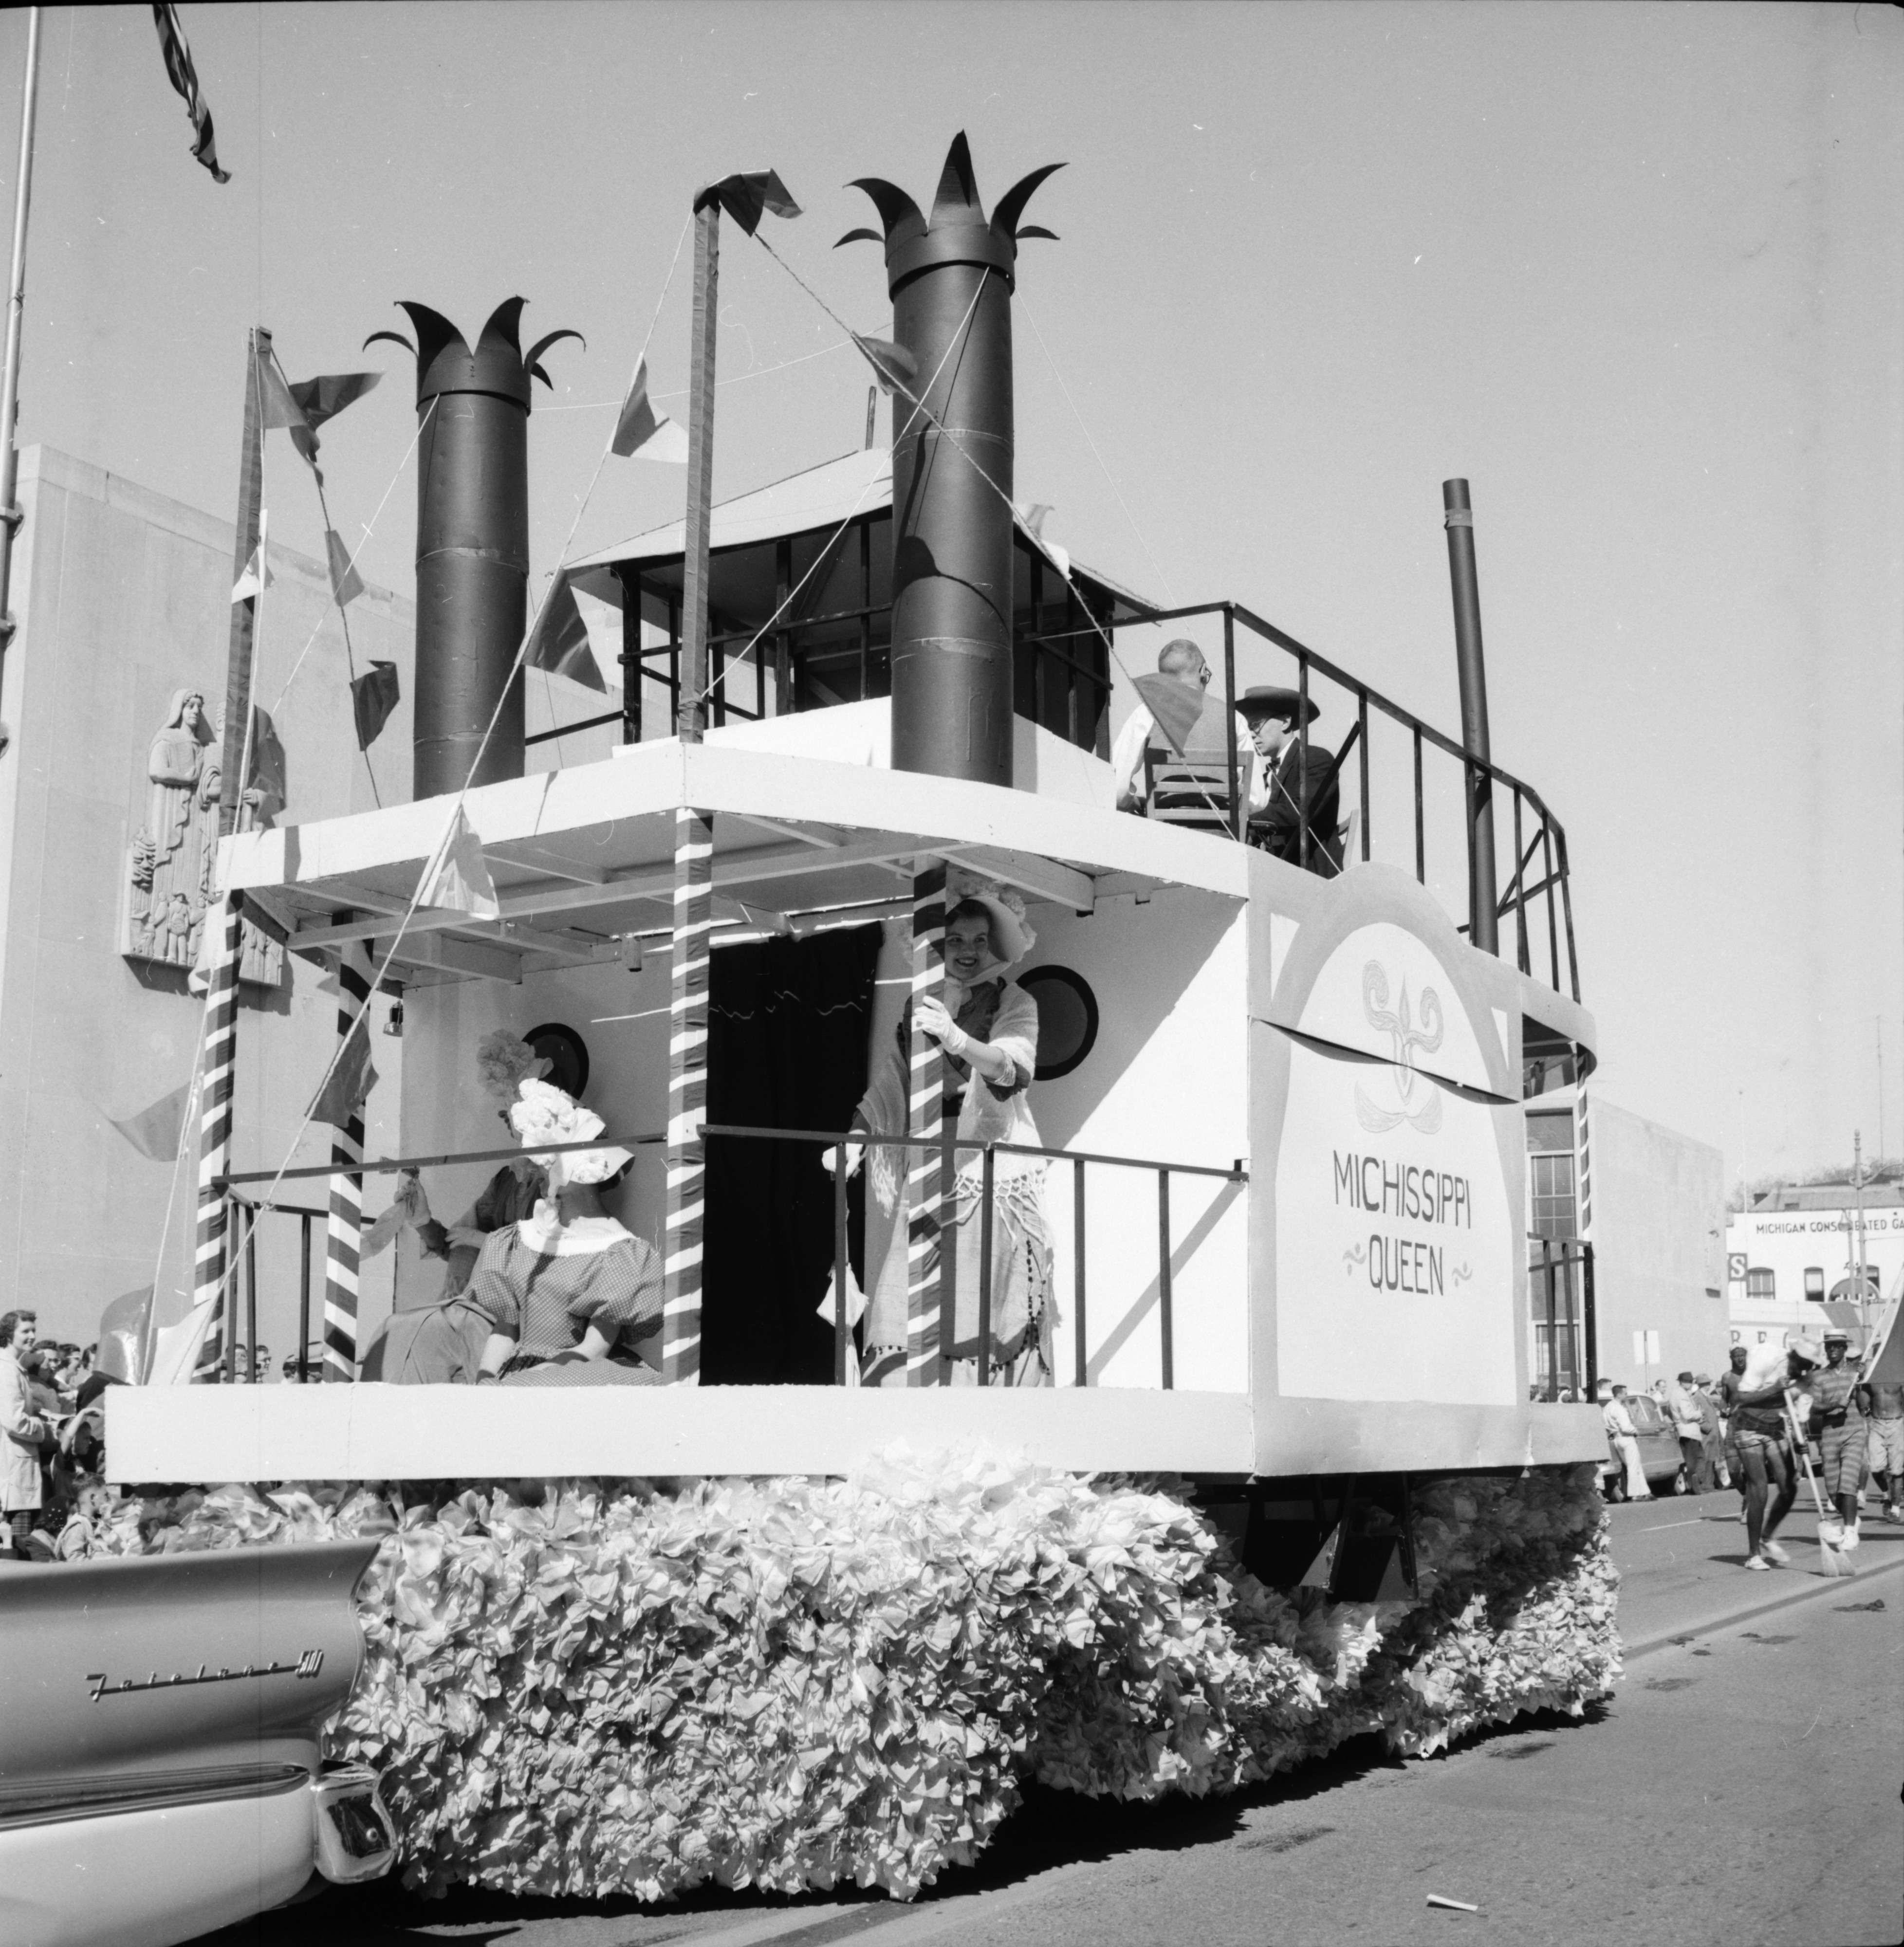 Phi Kappa Tau and Angell House Float in the Michigras Parade, April 1958 image